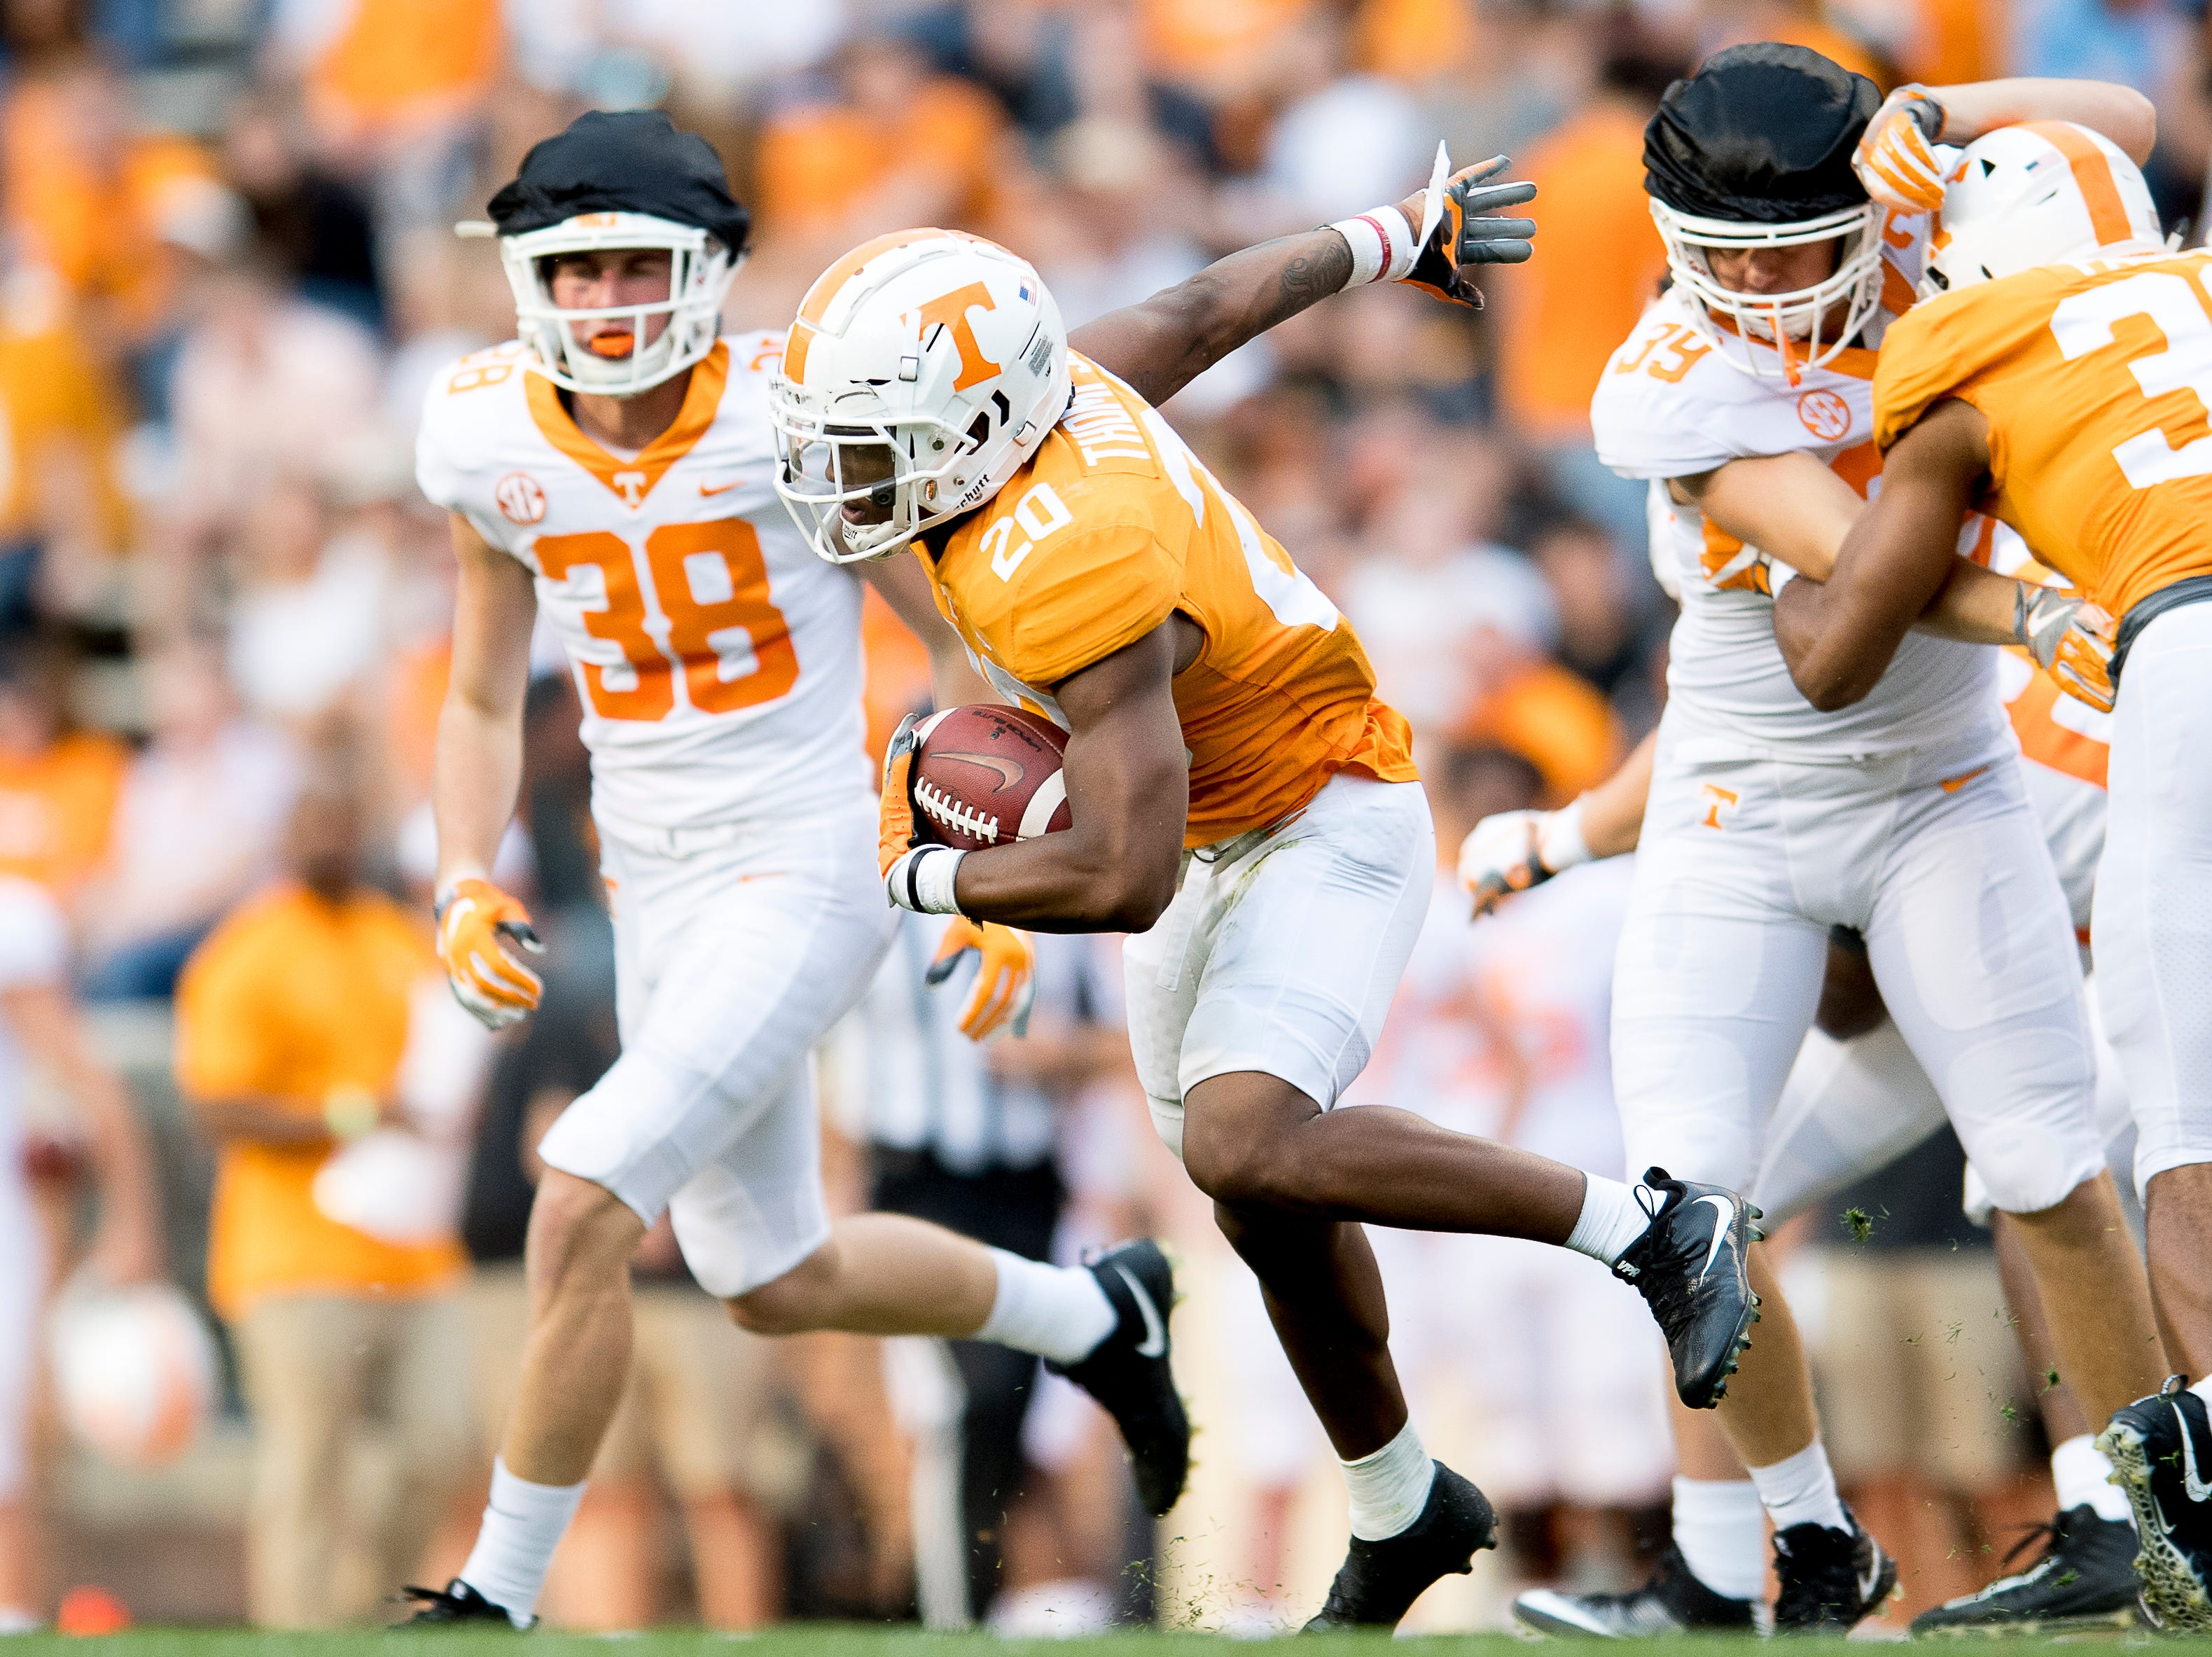 Tennessee defensive back Bryce Thompson (20) dodges the defense during the Tennessee Spring Game at Neyland Stadium in Knoxville, Tennessee on Saturday, April 13, 2019.